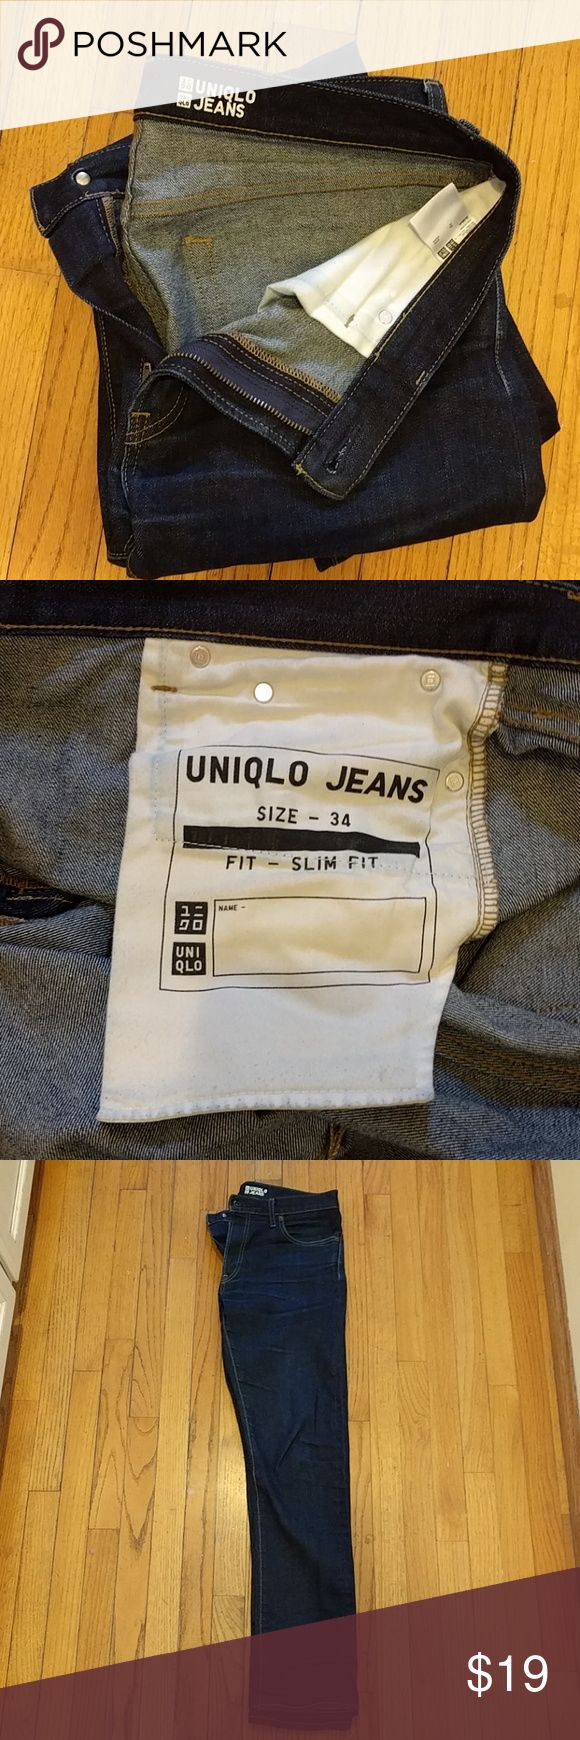 UNIQLO JEANS 34 x 34 / Slim Fit / Like New Nice pair of UNIQLO Jeans. Zipper Fly. Clean, No rips, No stains, No wear. Very well made. Size seems to run a bit small in UNIQLO but these are also slim fit so they do indeed hug the thighs. Very comfortable. Uniqlo Jeans Slim